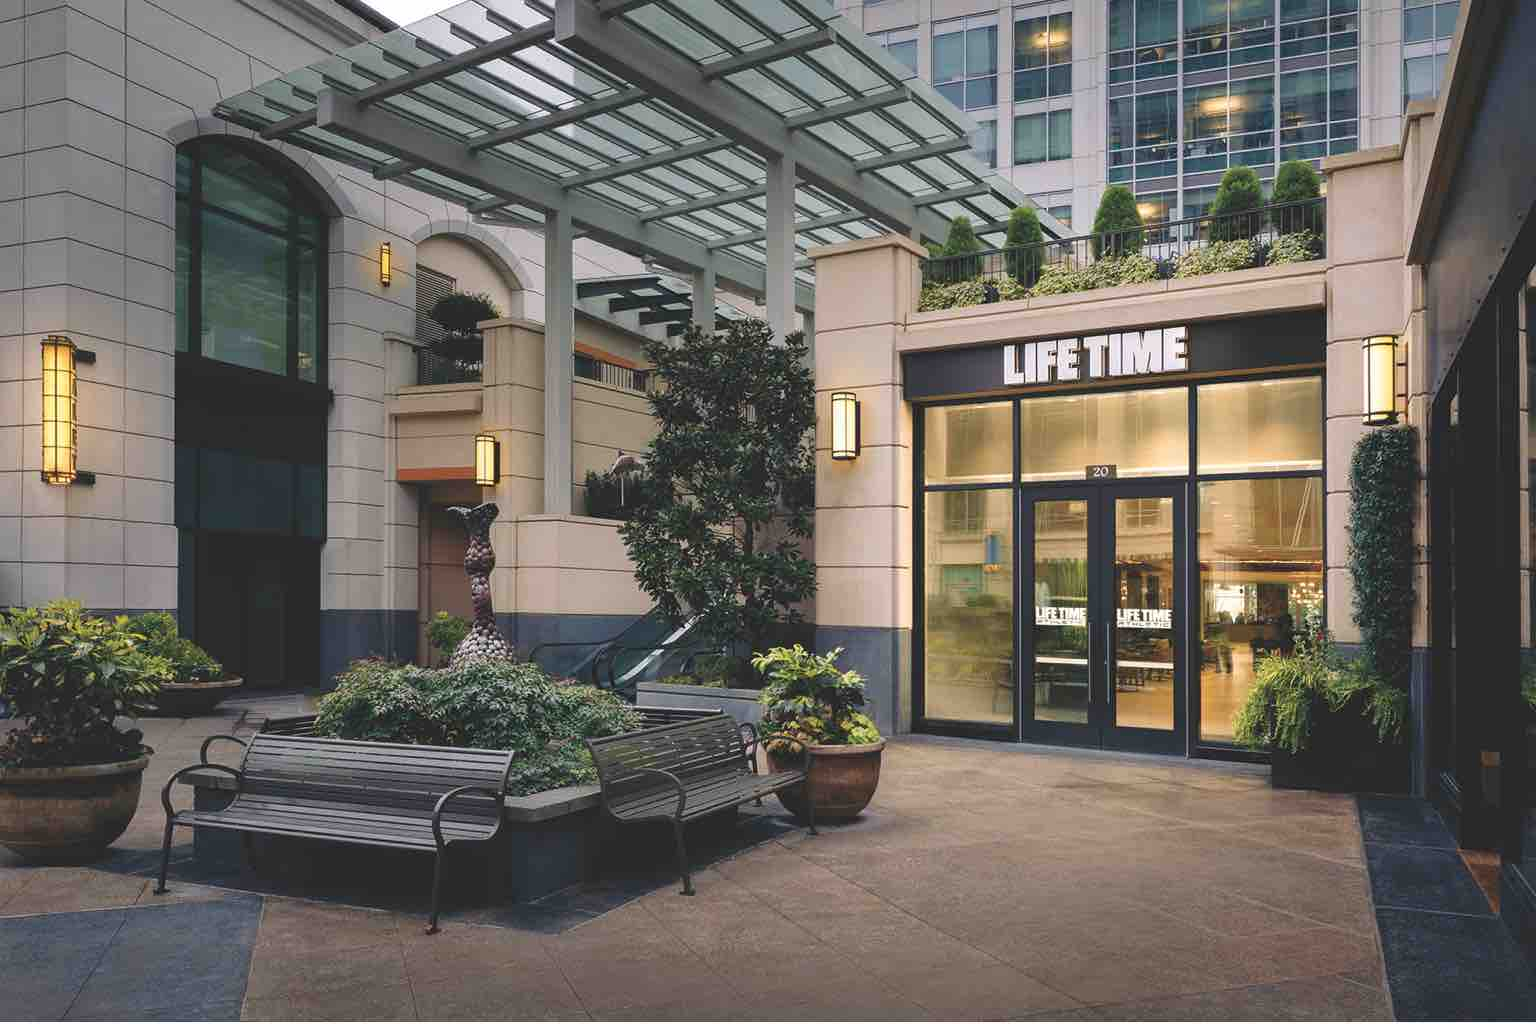 The cozy entrance to Life Time Bellevue, featuring park benches, patio pots and natural plantings